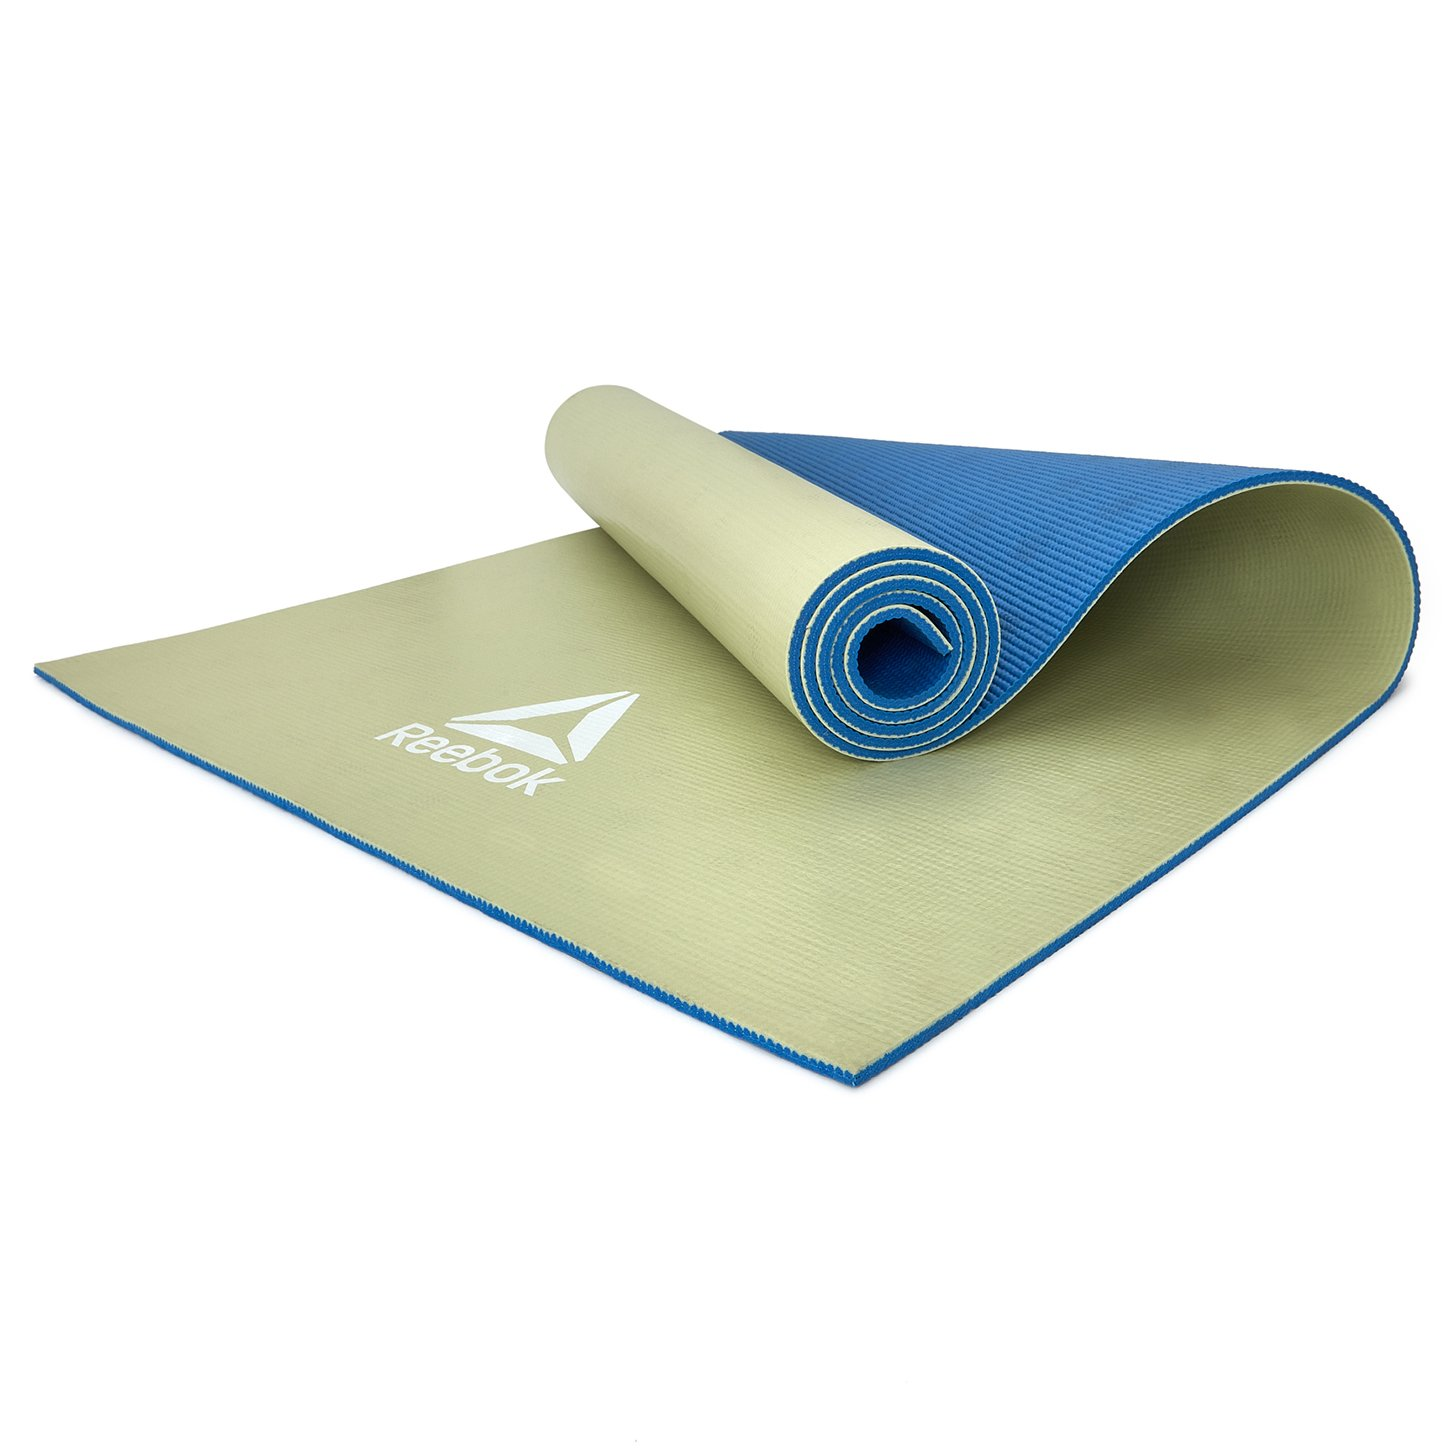 Amazon.com : Reebok Double Sided Yoga Mat, Blue/Green, 6mm ...